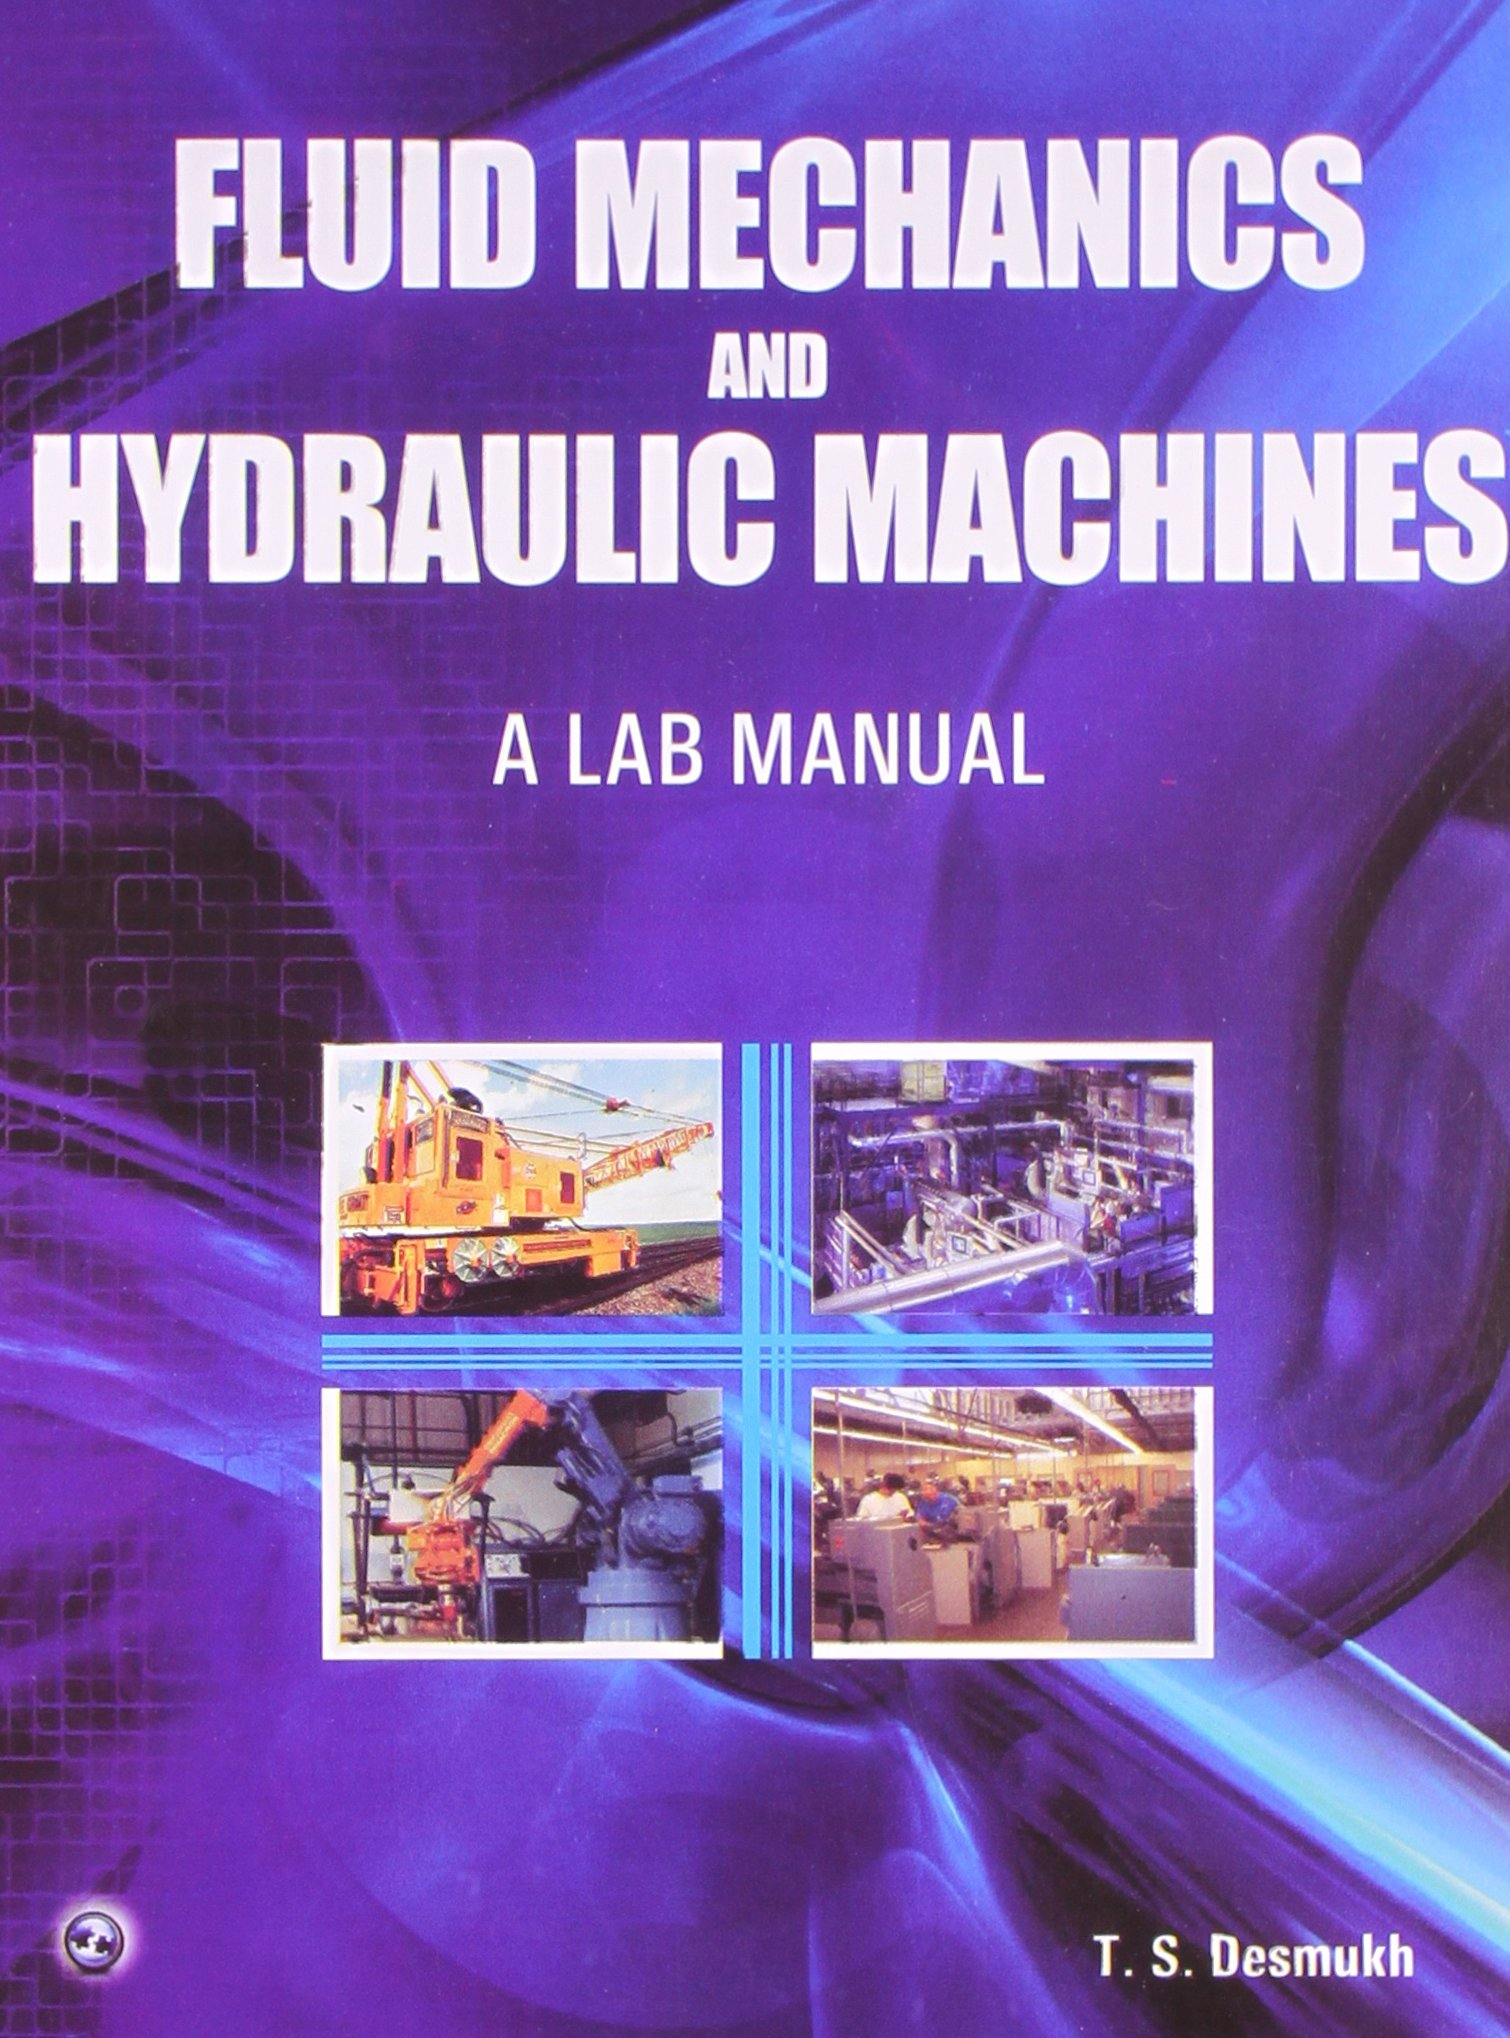 Buy Fluid Mechanics and Hydraulic Machines: A Lab Manual Book Online at Low  Prices in India | Fluid Mechanics and Hydraulic Machines: A Lab Manual  Reviews ...